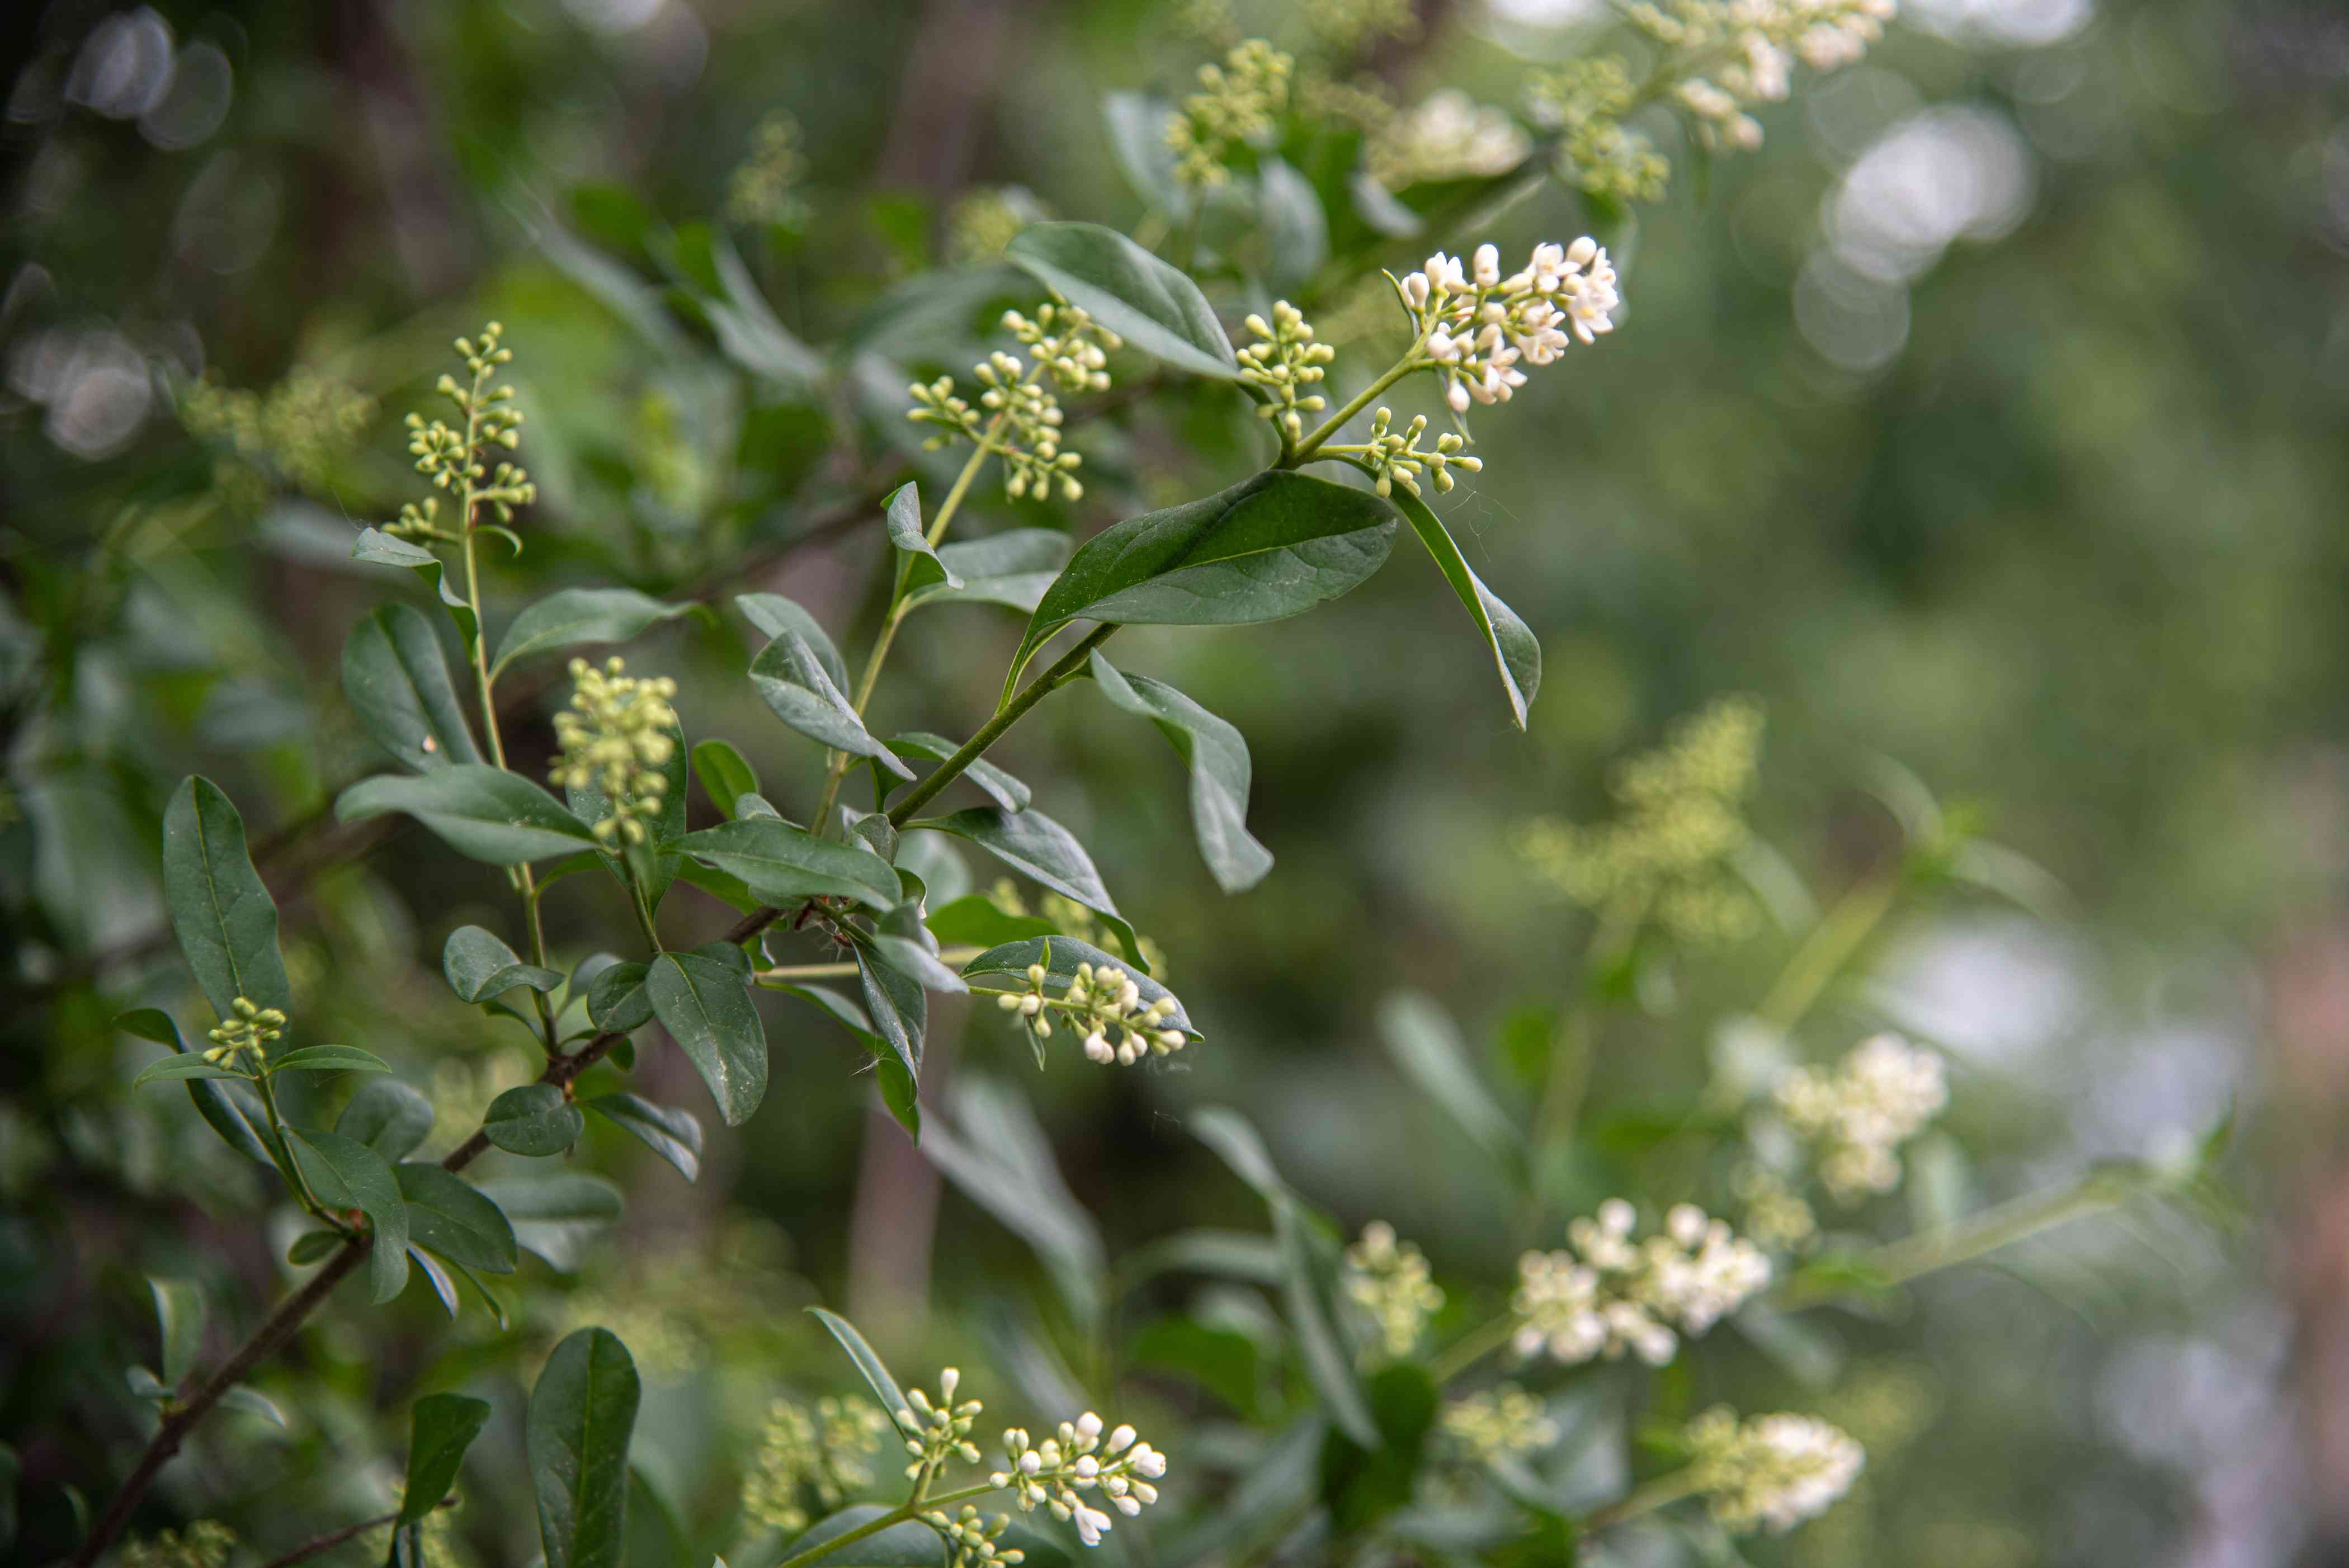 Privet hedge stems with small white flower panicles and buds surrounded by leaves